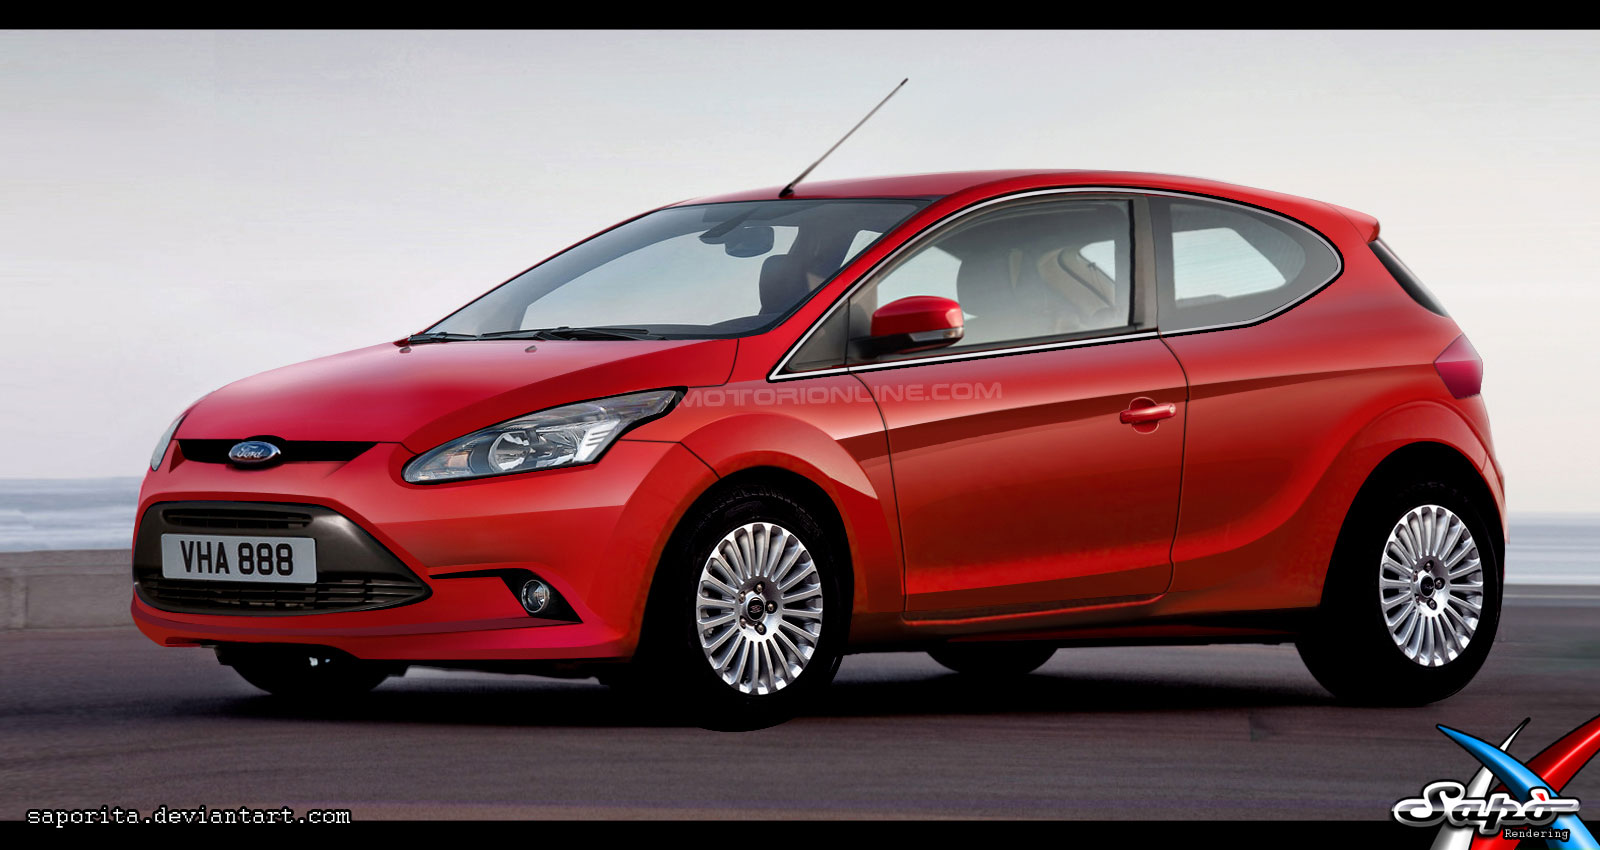 Nuova Ford Focus: rendering - 1/1